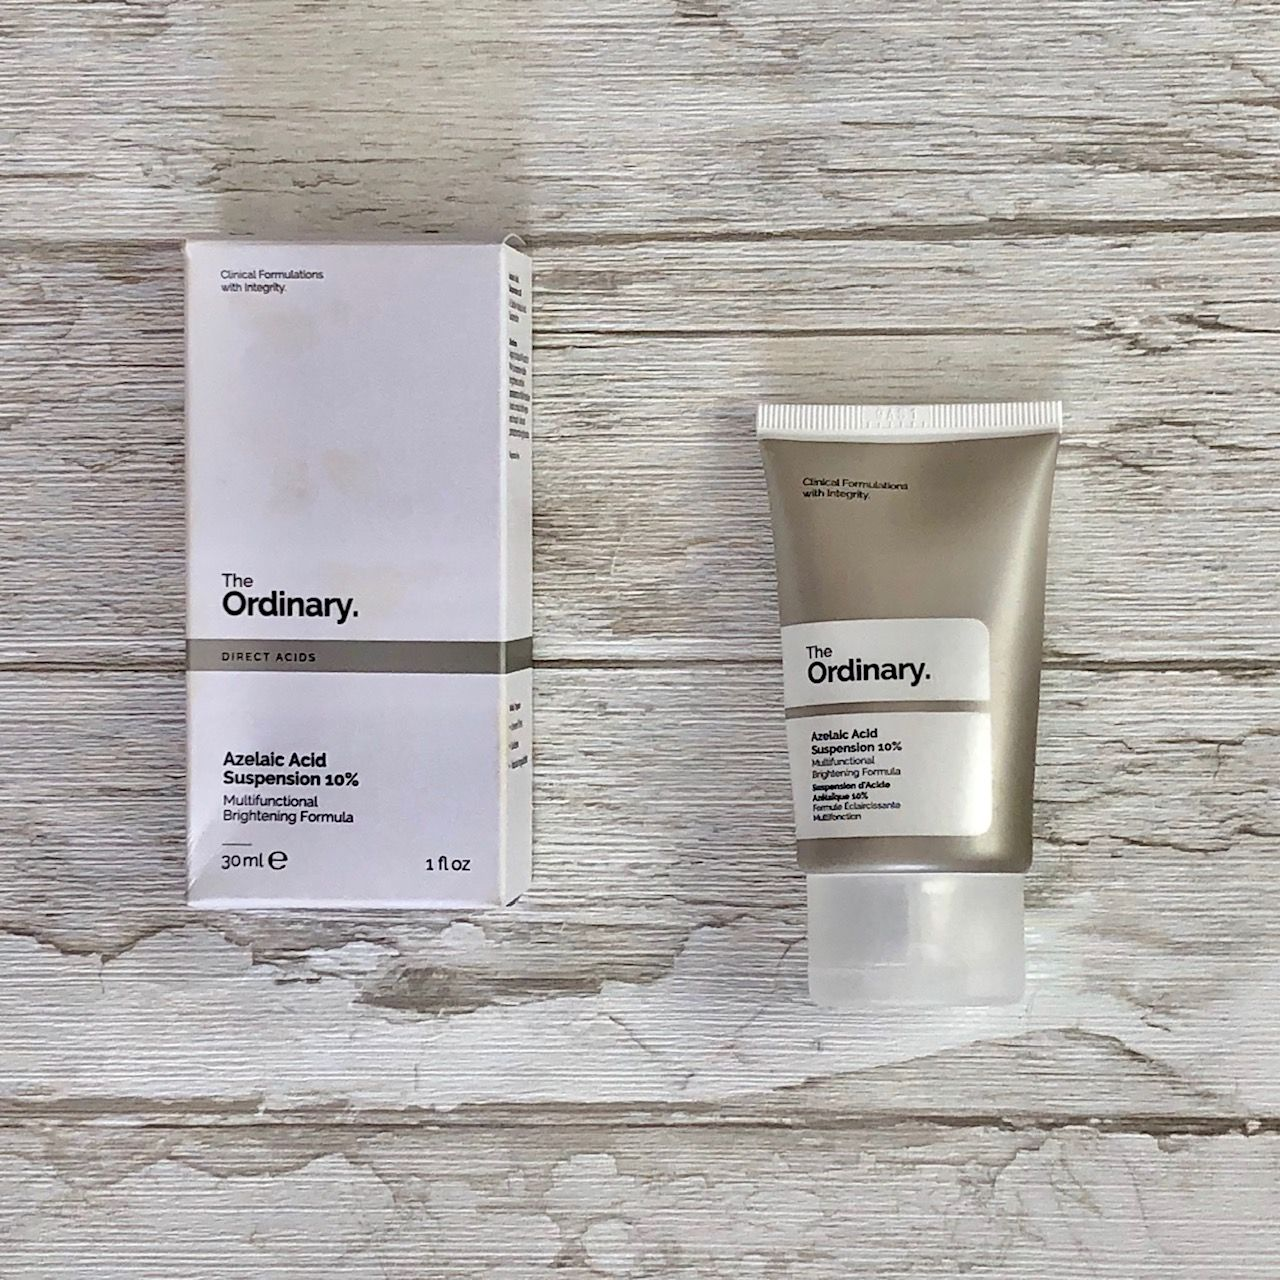 Azelaic Acid Suspension 10% de The Ordinary